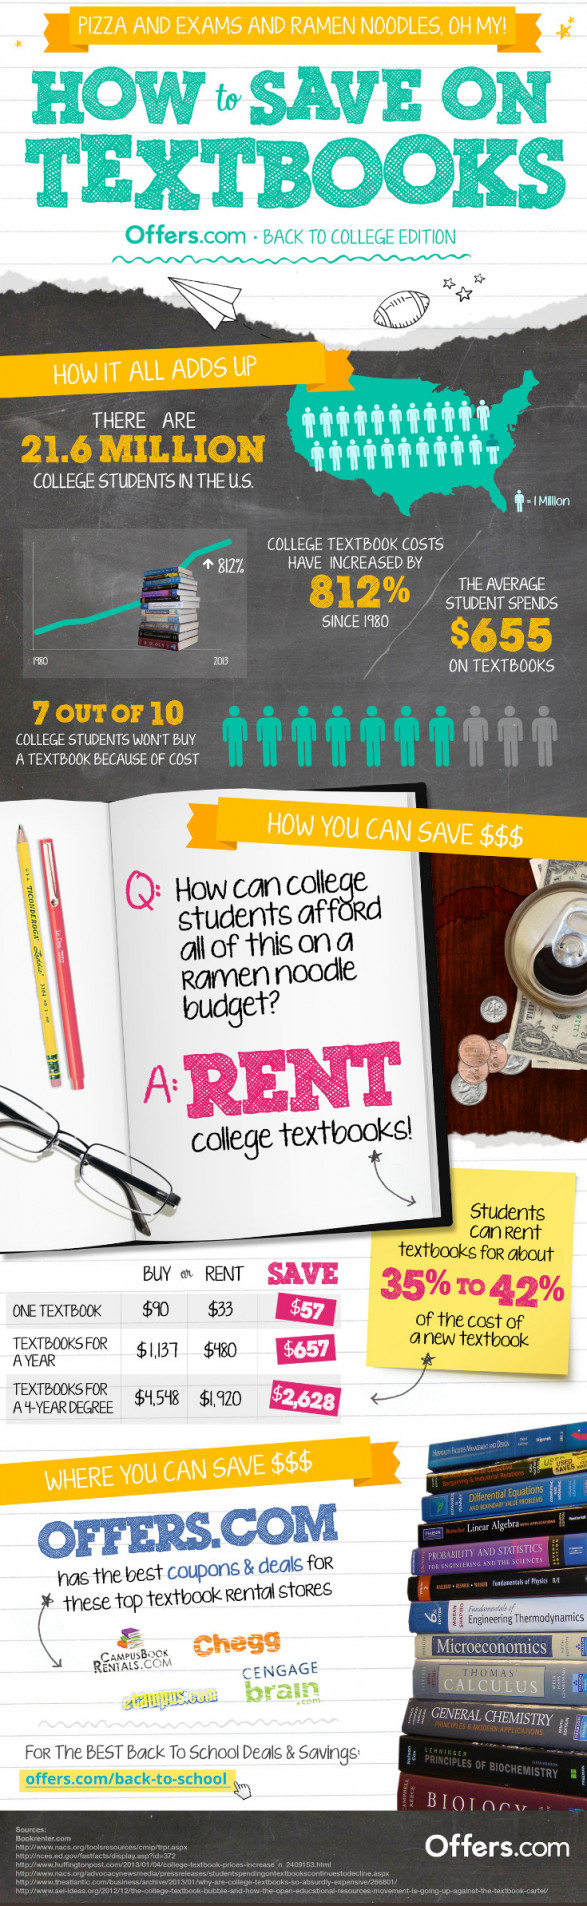 How to Save on Textbooks